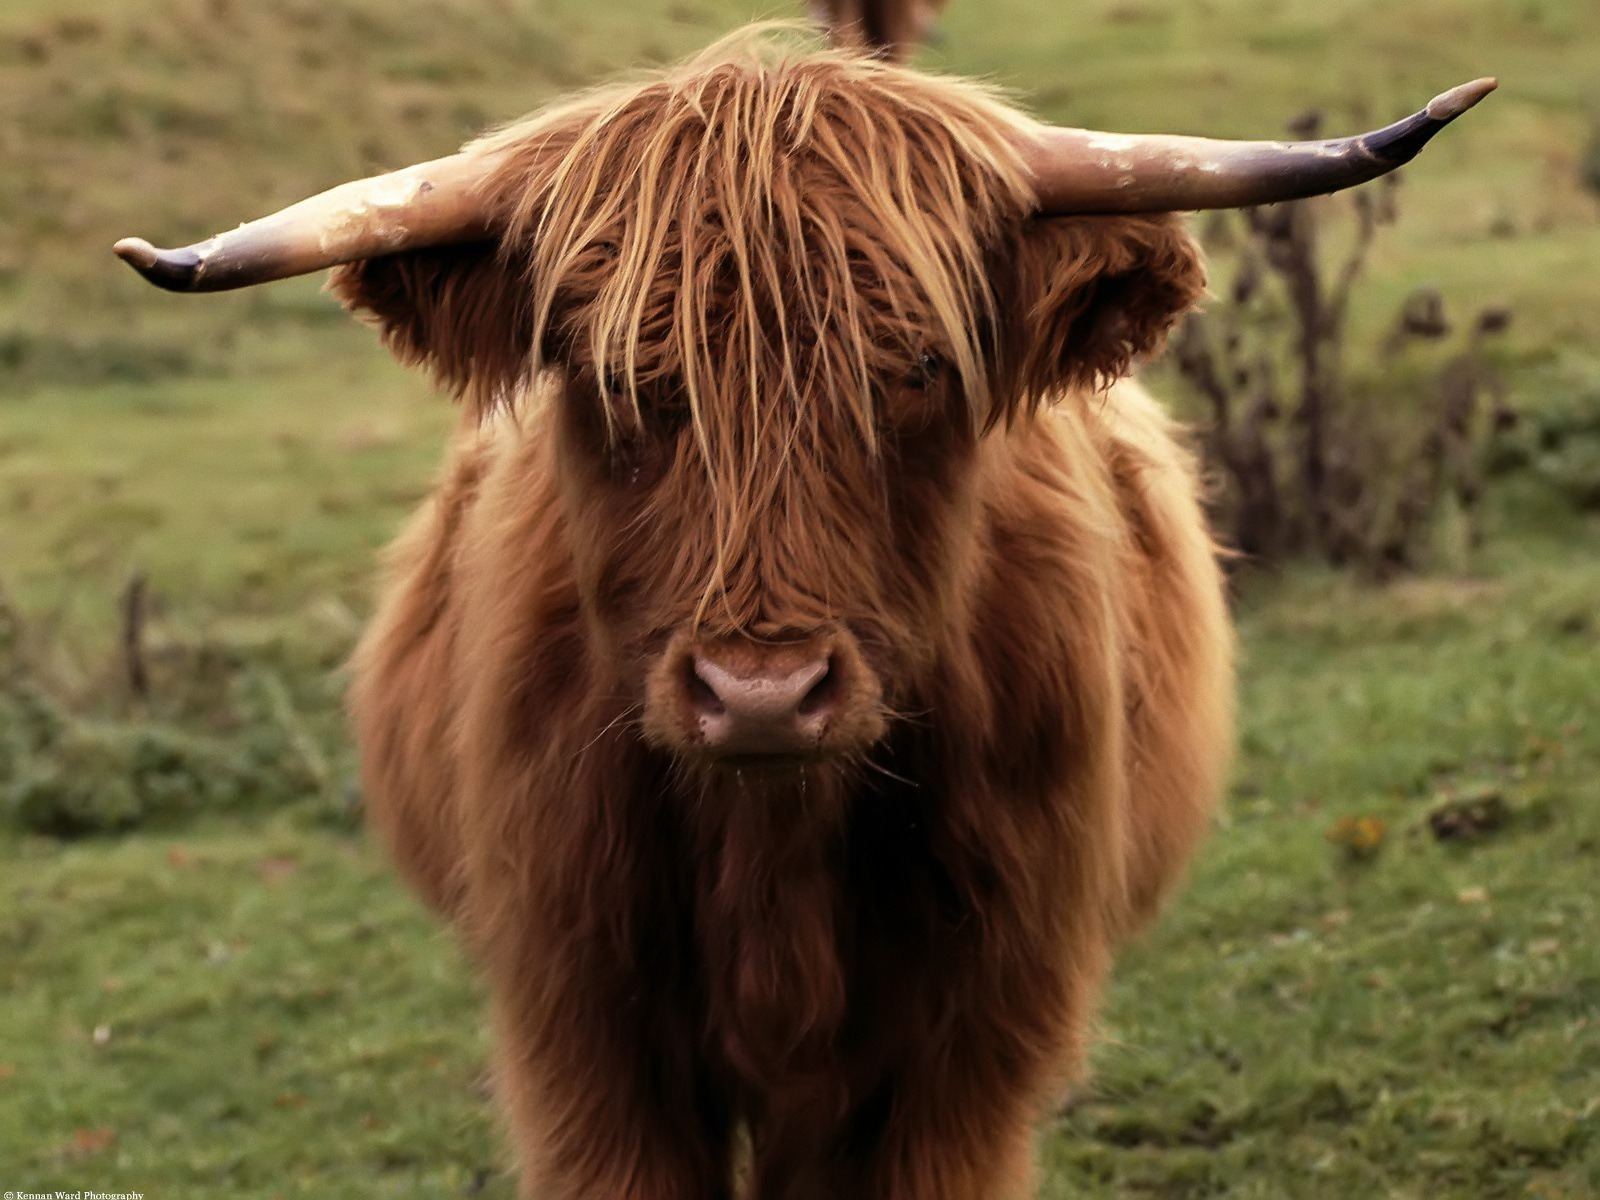 shetland cow wallpaper other animals wallpapers in jpg format for